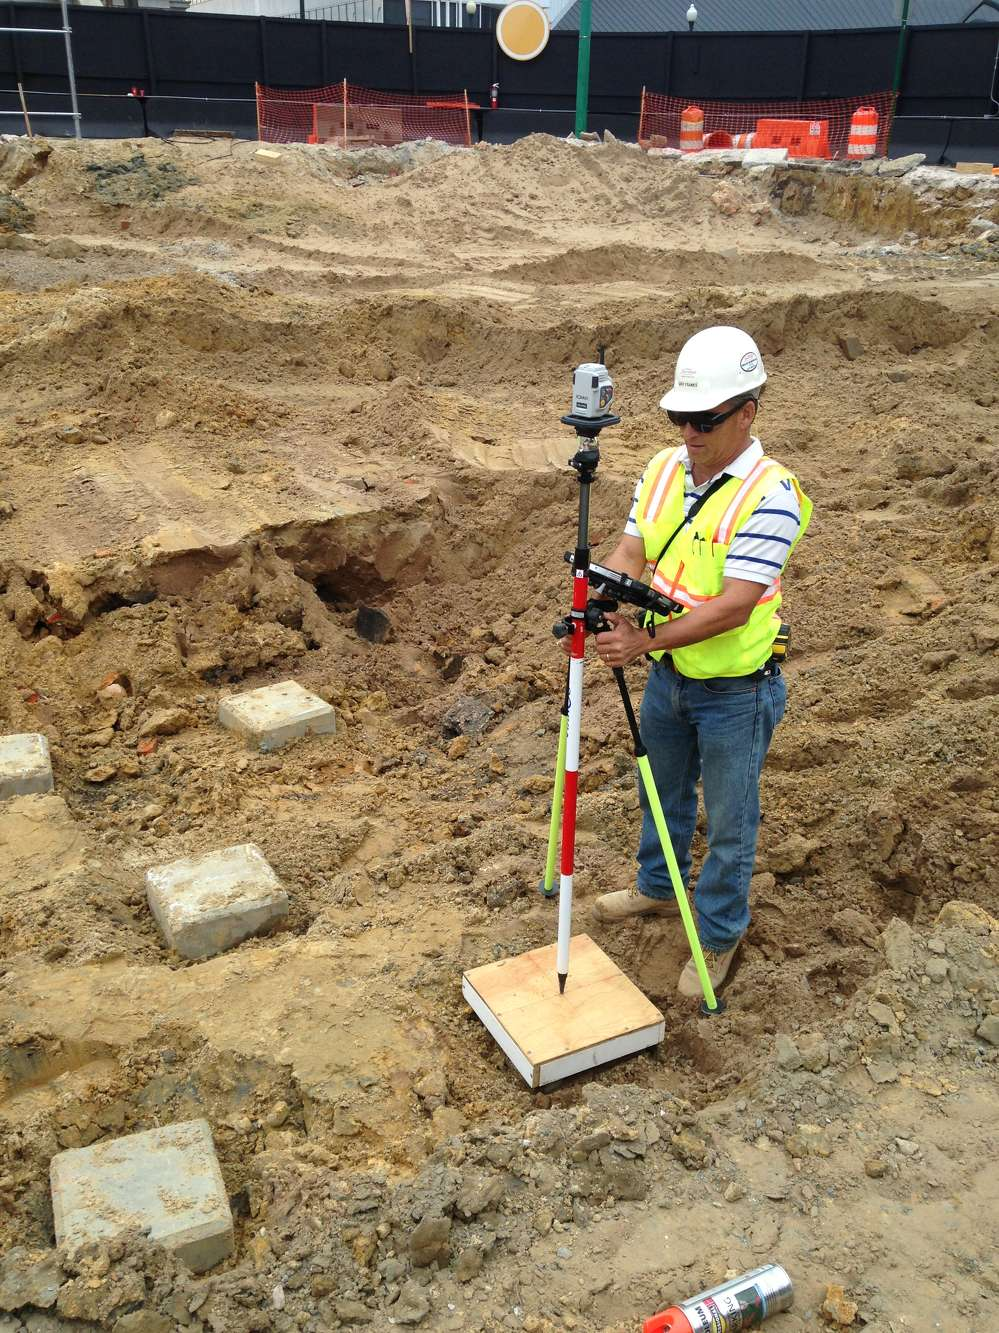 W. M. Jordan Company used a robotic total station for field work for the first time on this project.